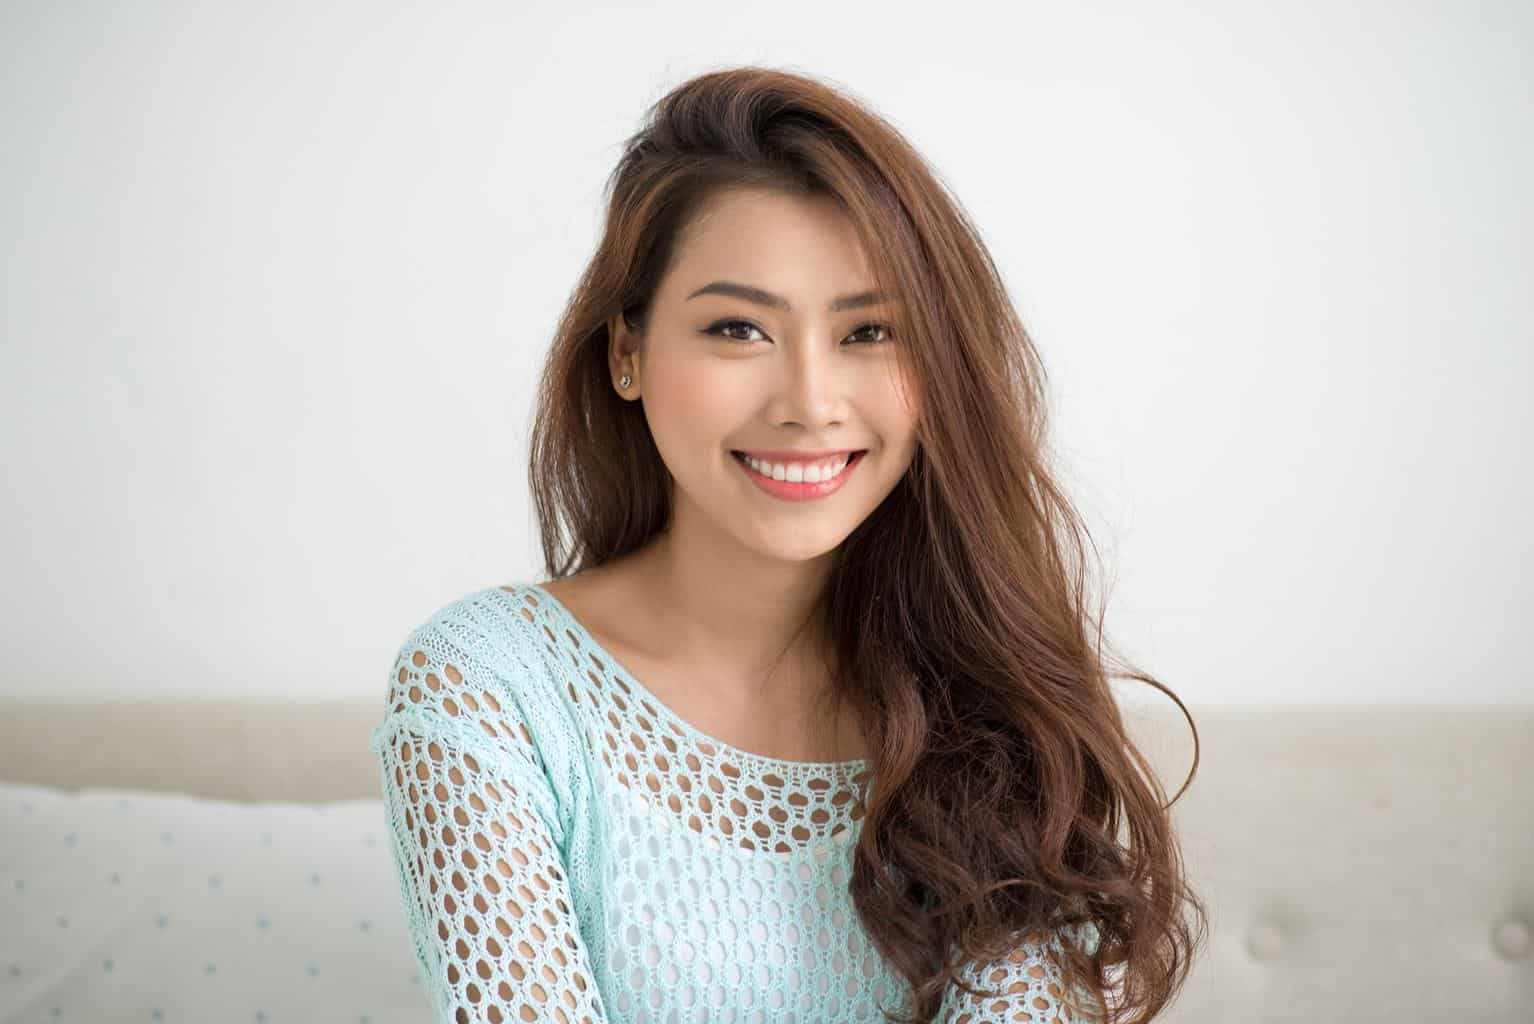 point marion asian single women Matchcom, the leading online dating resource for singles search through thousands of personals and photos go ahead, it's free to look.